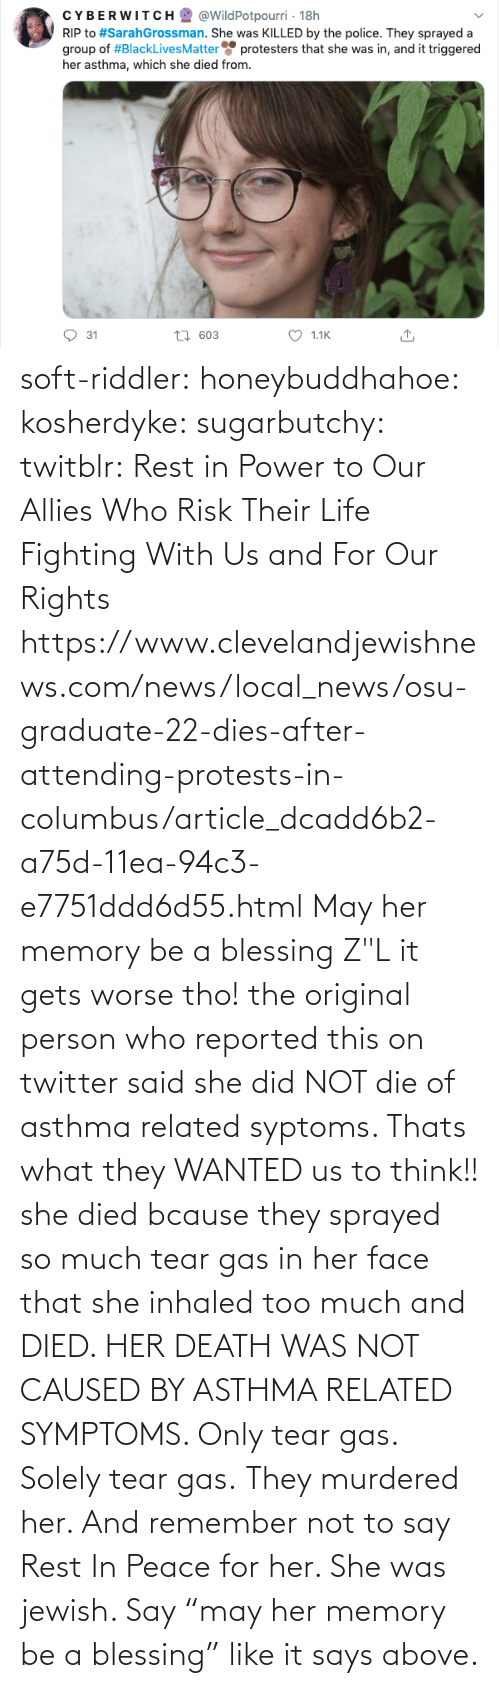 "data: soft-riddler:  honeybuddhahoe:  kosherdyke:  sugarbutchy:  twitblr: Rest in Power to Our Allies Who Risk Their Life Fighting With Us and For Our Rights https://www.clevelandjewishnews.com/news/local_news/osu-graduate-22-dies-after-attending-protests-in-columbus/article_dcadd6b2-a75d-11ea-94c3-e7751ddd6d55.html    May her memory be a blessing Z""L  it gets worse tho! the original person who reported this on twitter said she did NOT die of asthma related syptoms. Thats what they WANTED us to think!! she died bcause they sprayed so much tear gas in her face that she inhaled too much and DIED. HER DEATH WAS NOT CAUSED BY ASTHMA RELATED SYMPTOMS. Only tear gas. Solely tear gas. They murdered her.     And remember not to say Rest In Peace for her. She was jewish. Say ""may her memory be a blessing"" like it says above."